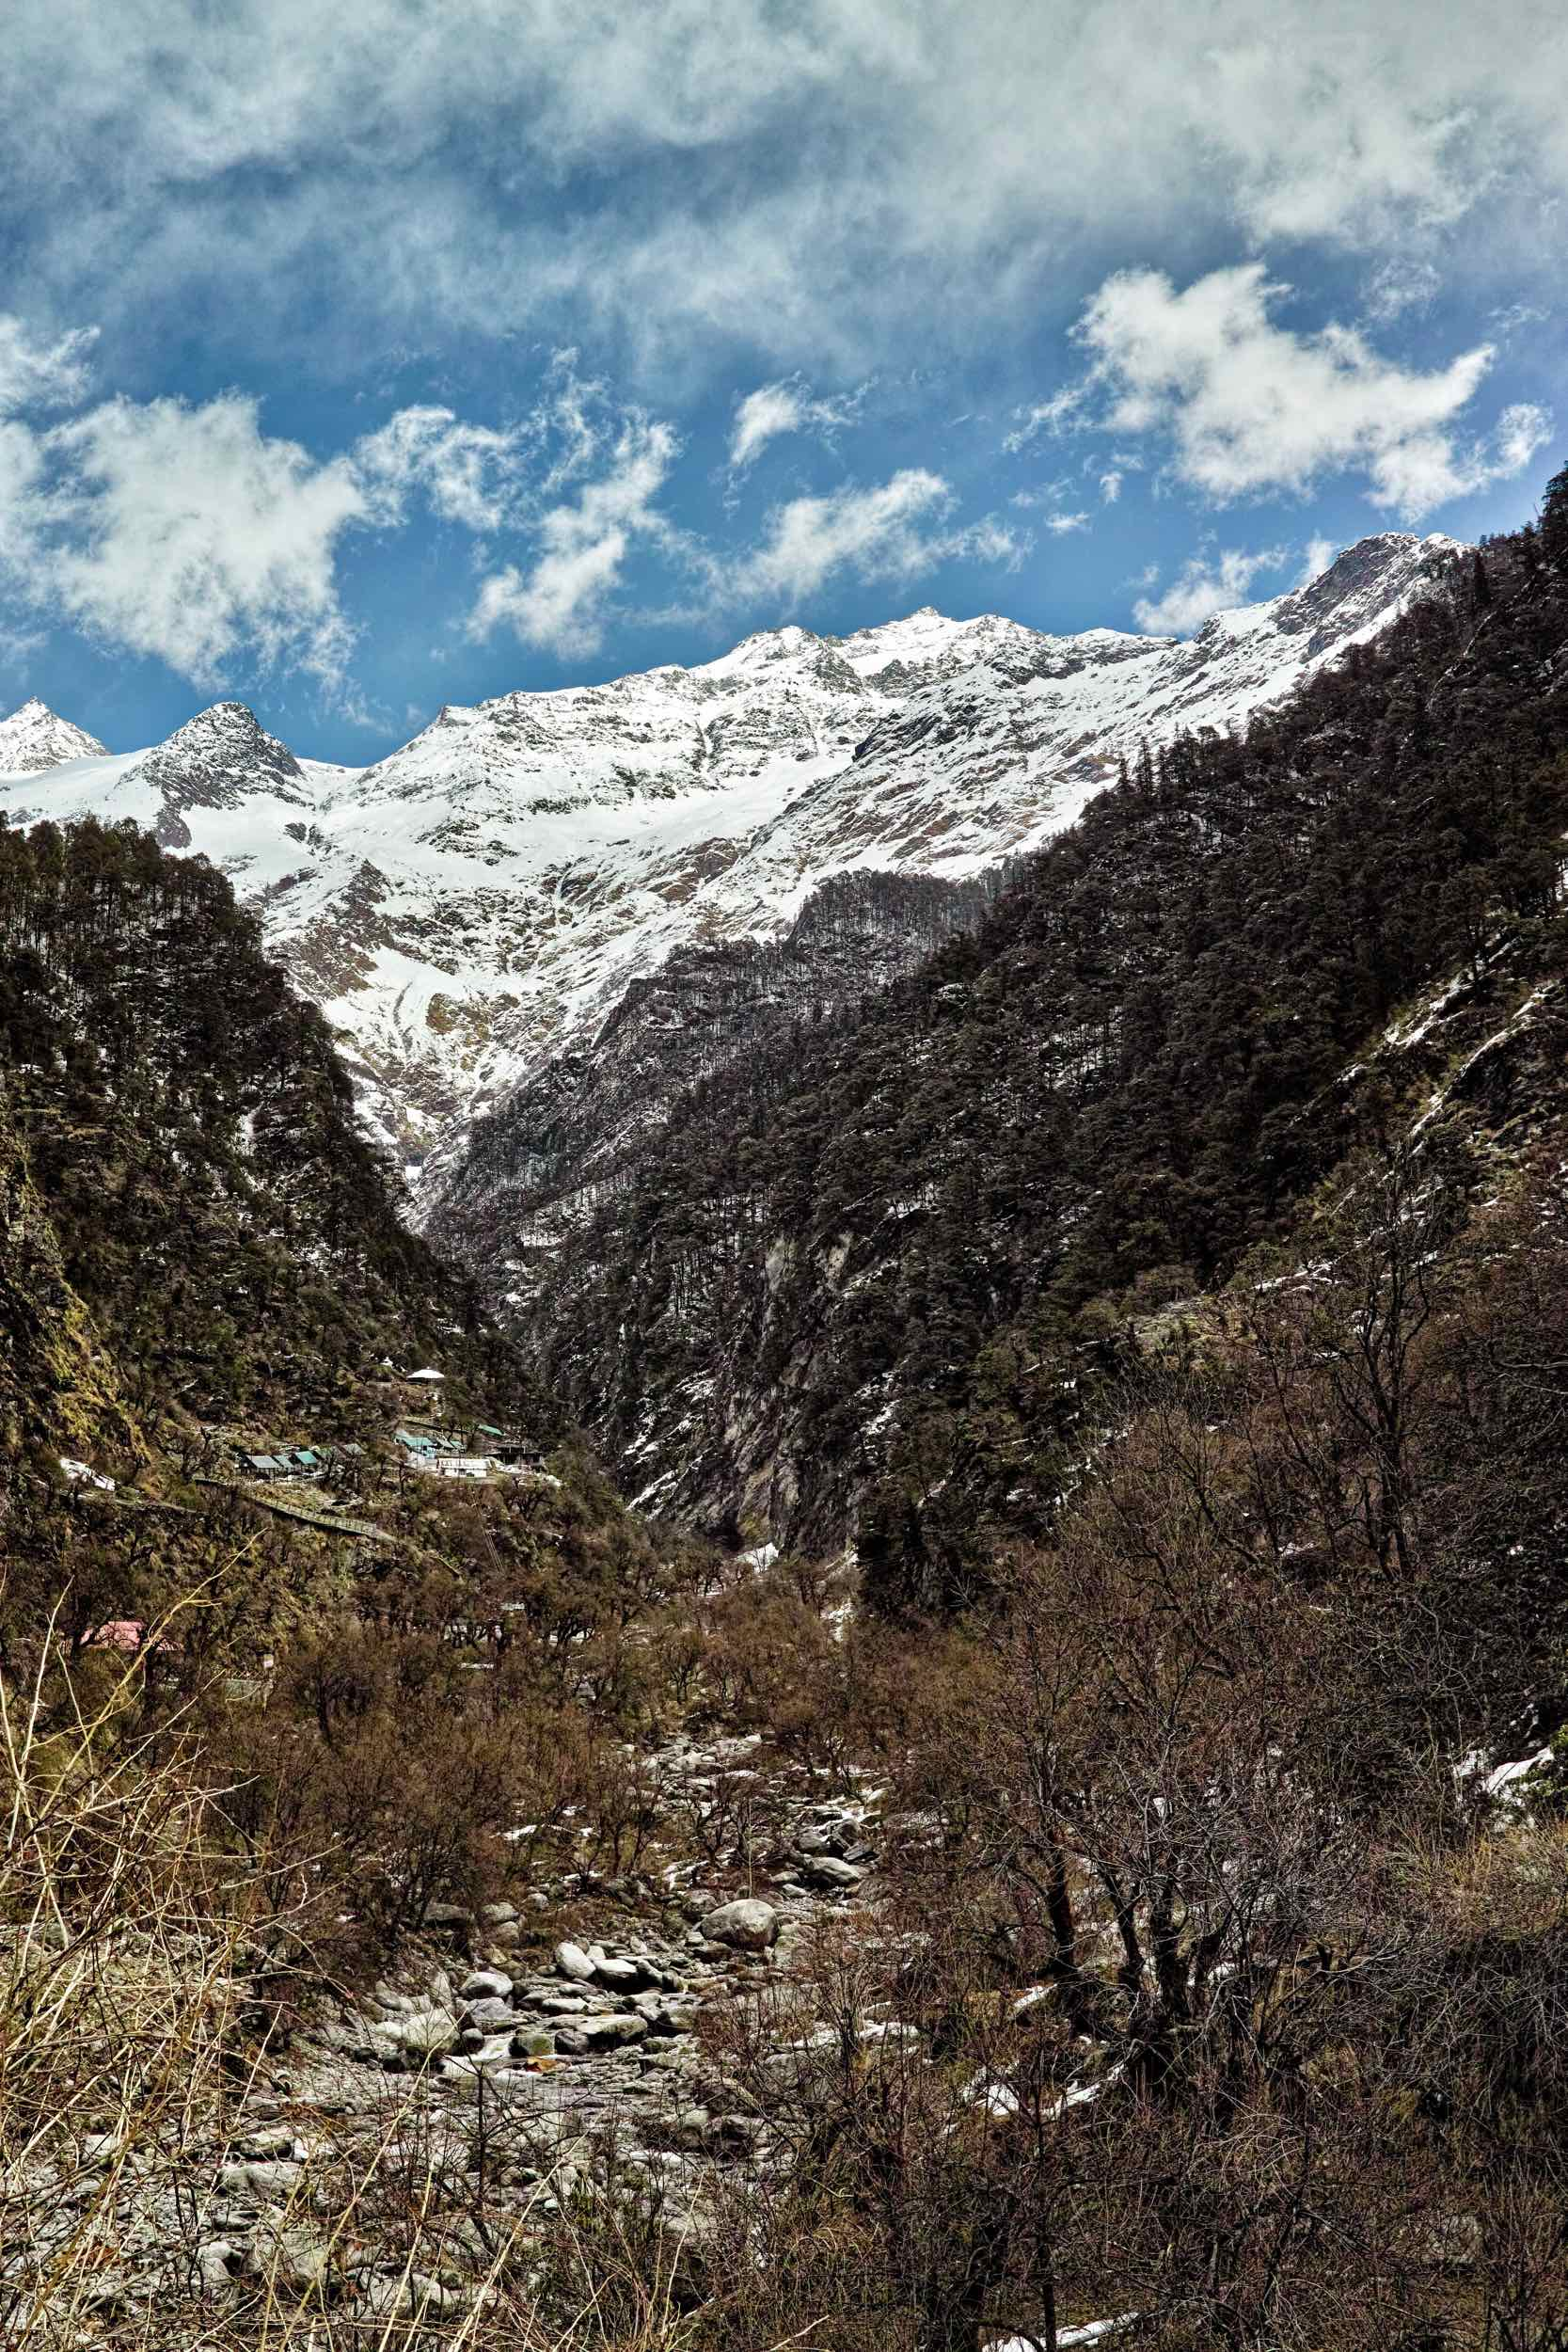 Here's the massif that I'm obsessed with. Bandarpoonch's immensity humbles me.